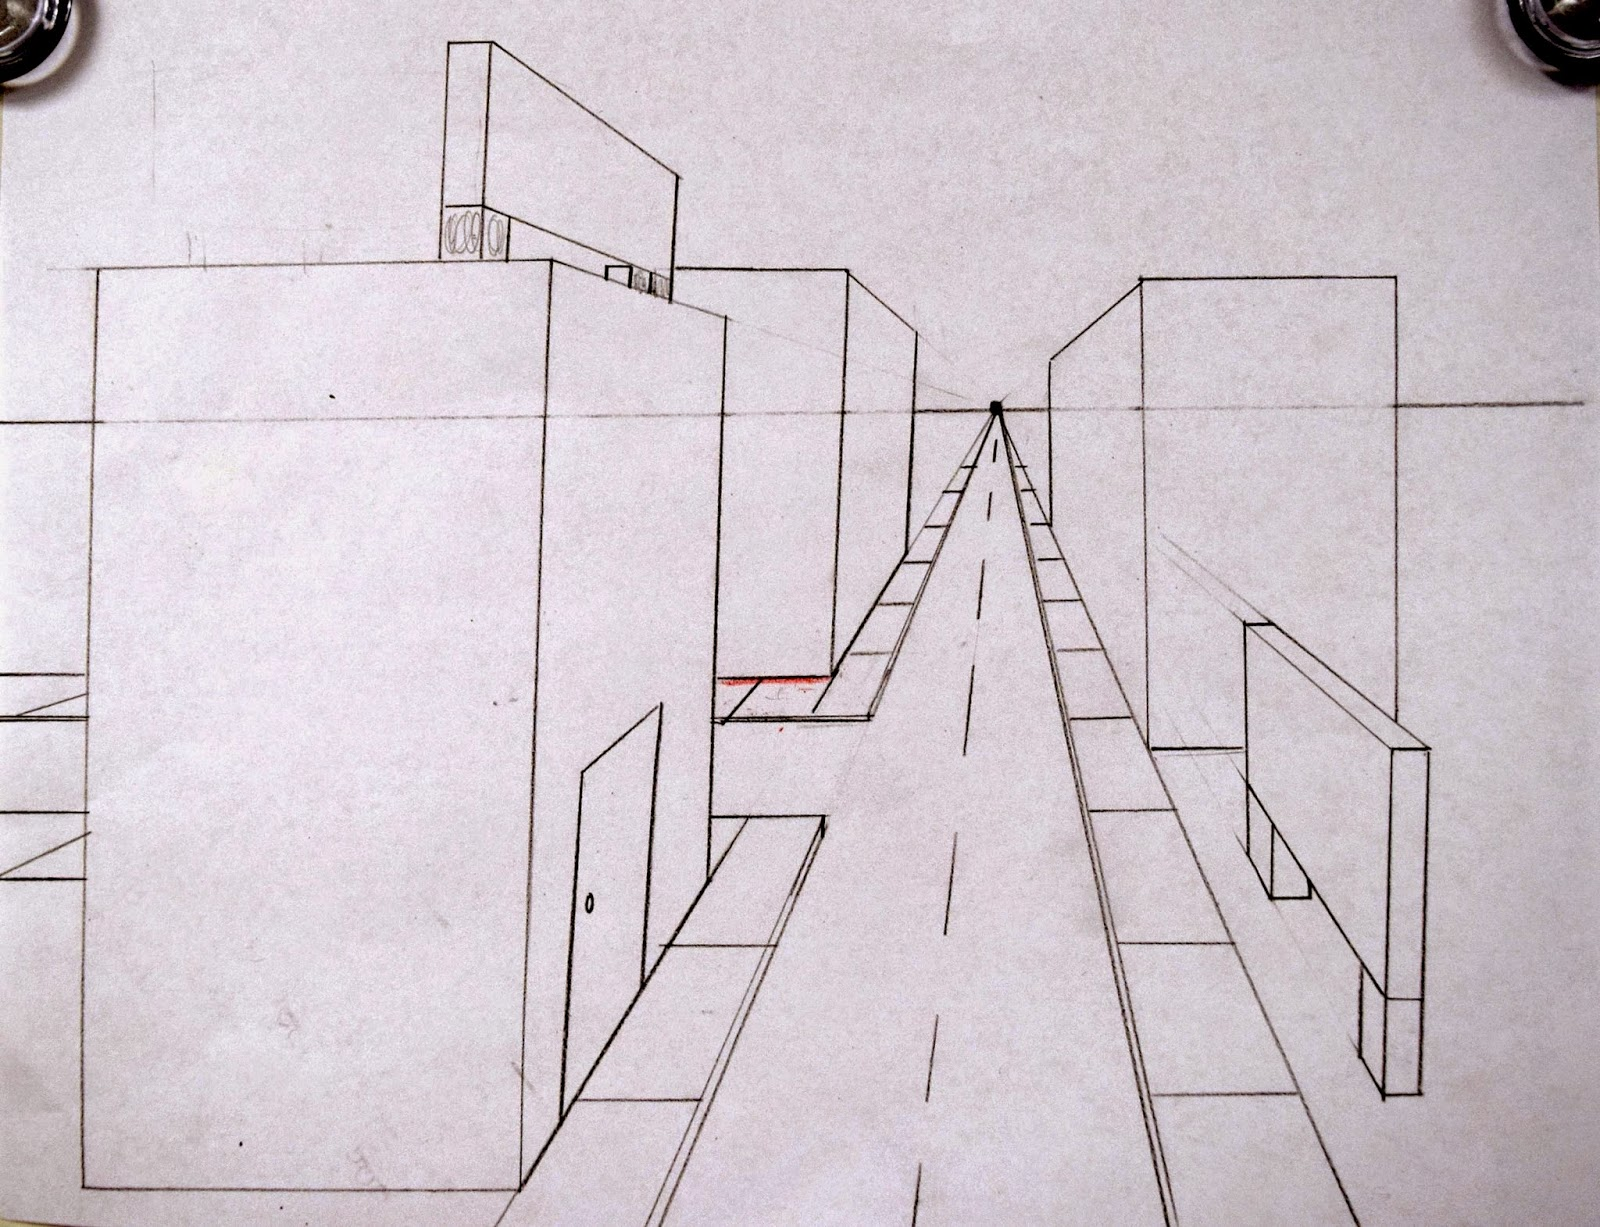 One Line Art Animation : One point perspective streetscapes 2.0 5th art with mrs. nguyen